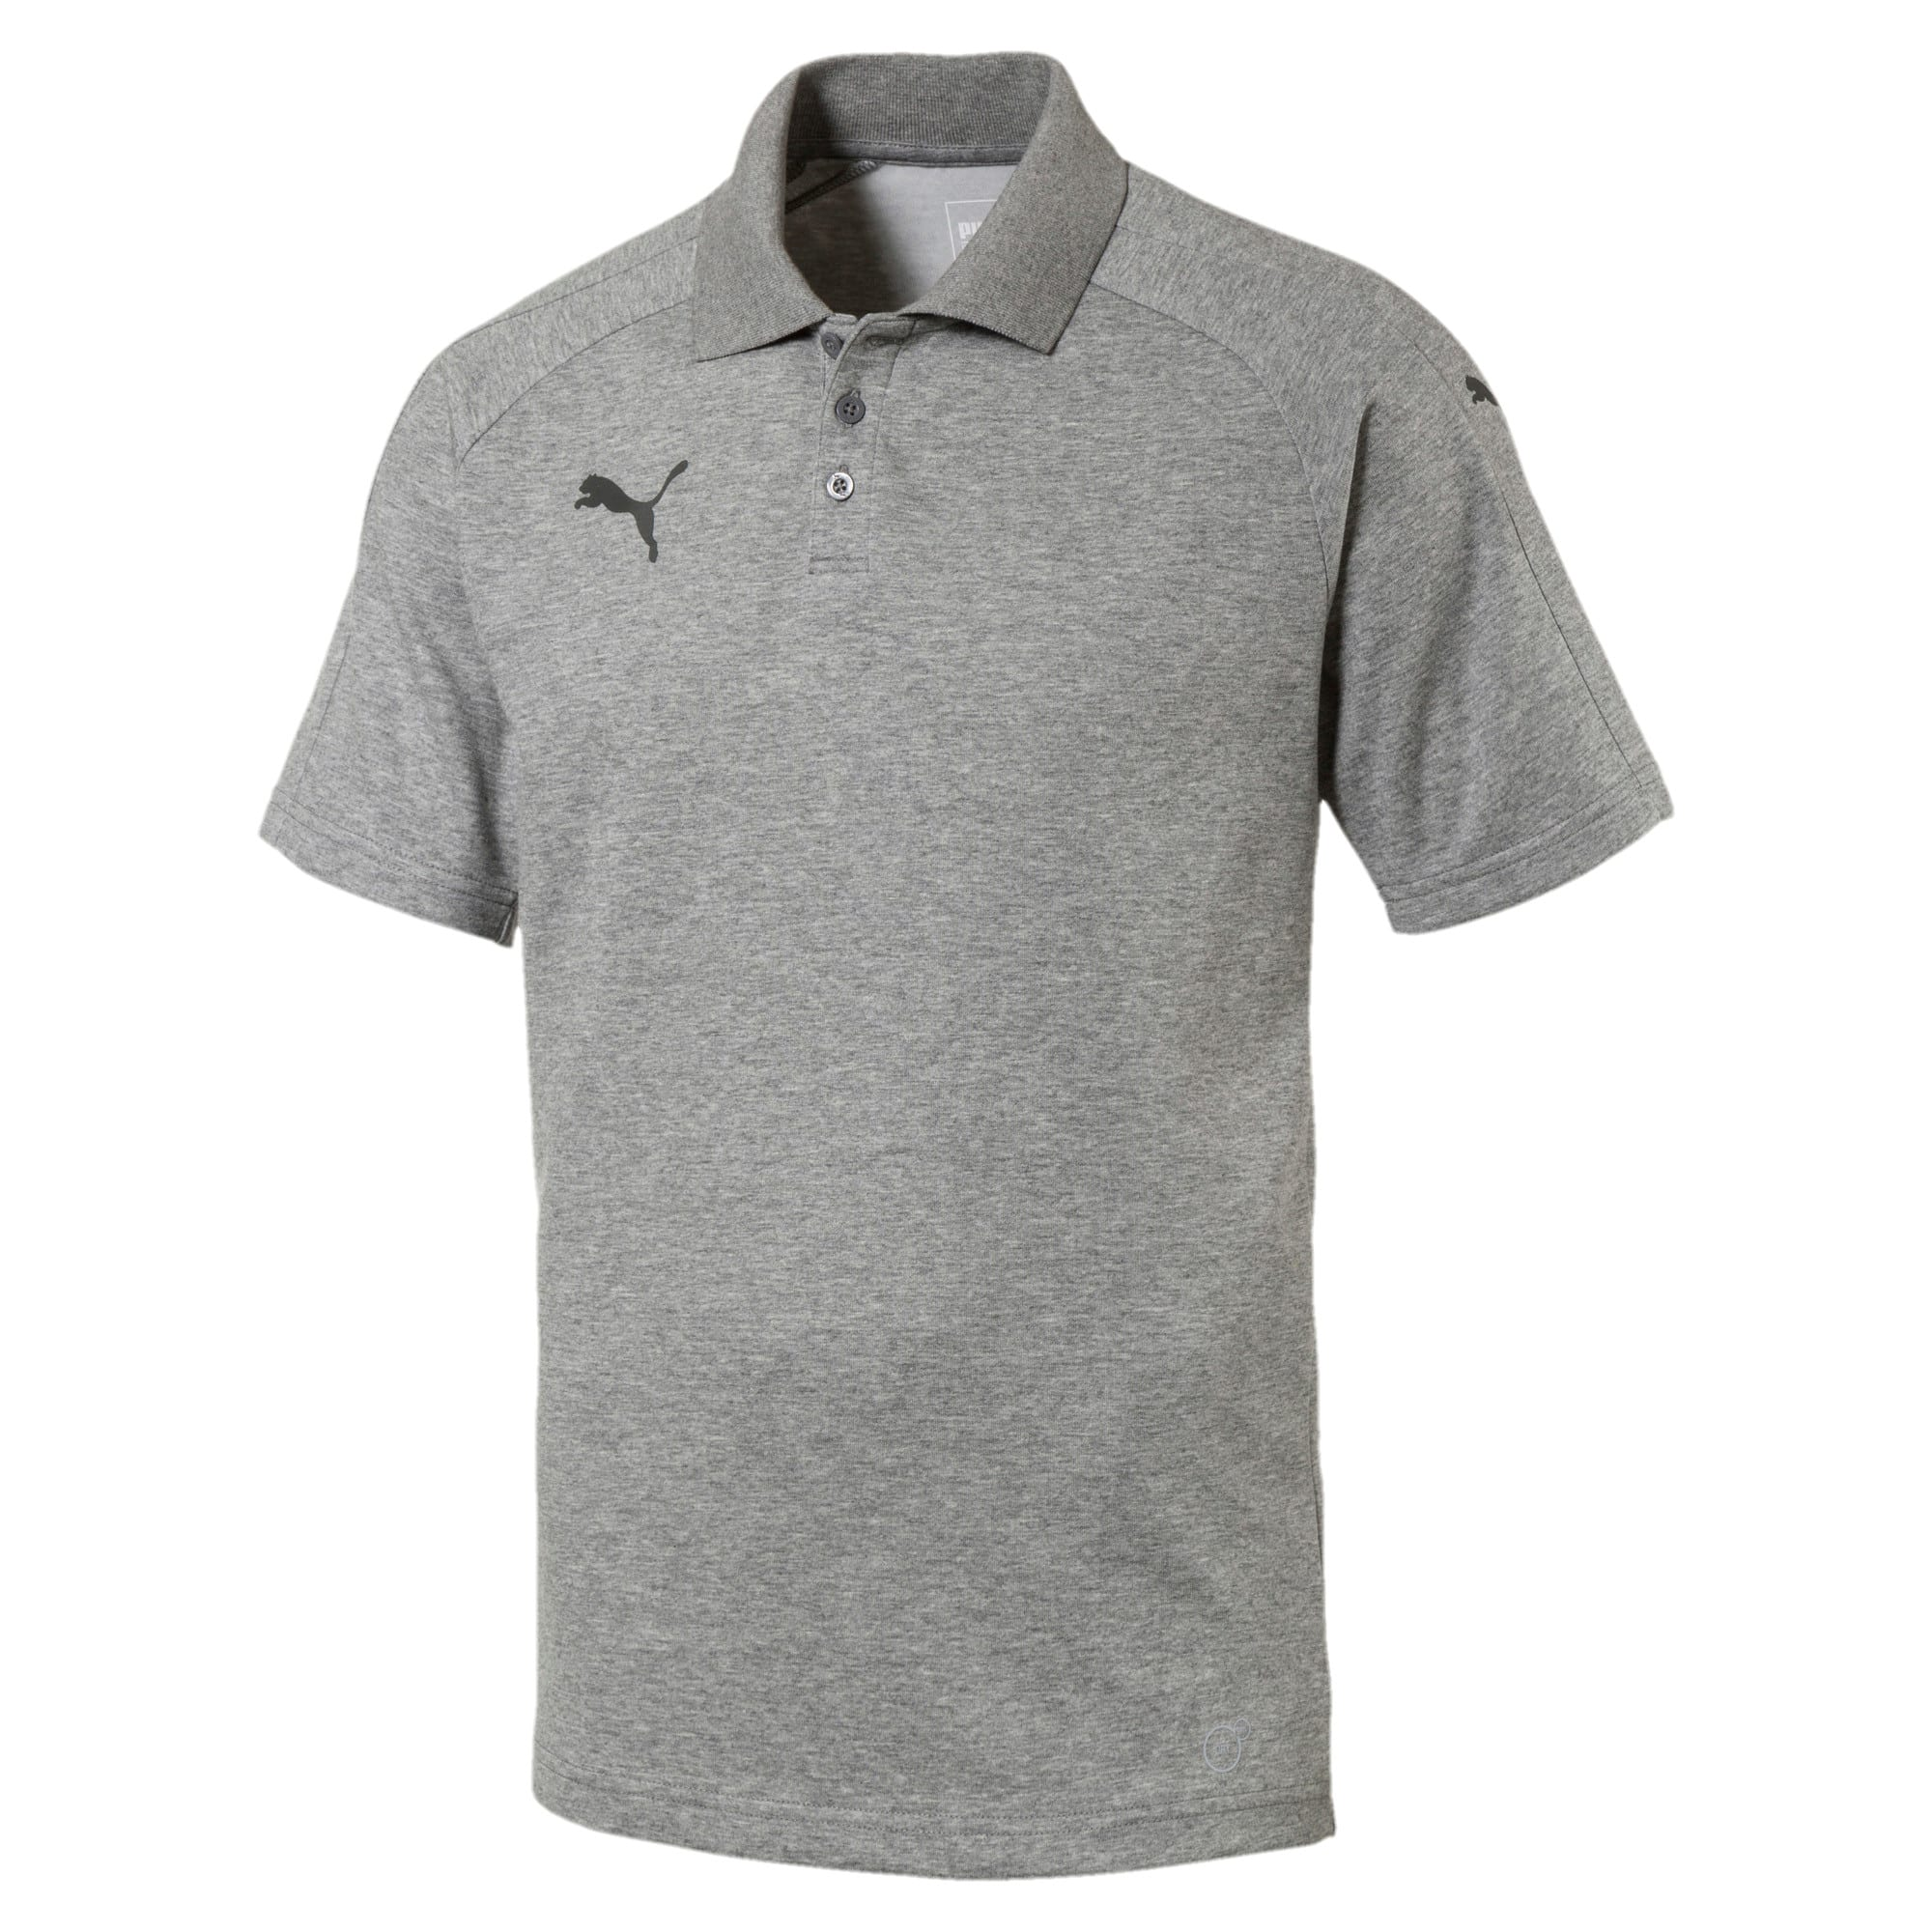 Thumbnail 1 of Men's Ascension Casuals Polo, Medium Gray Heather, medium-IND